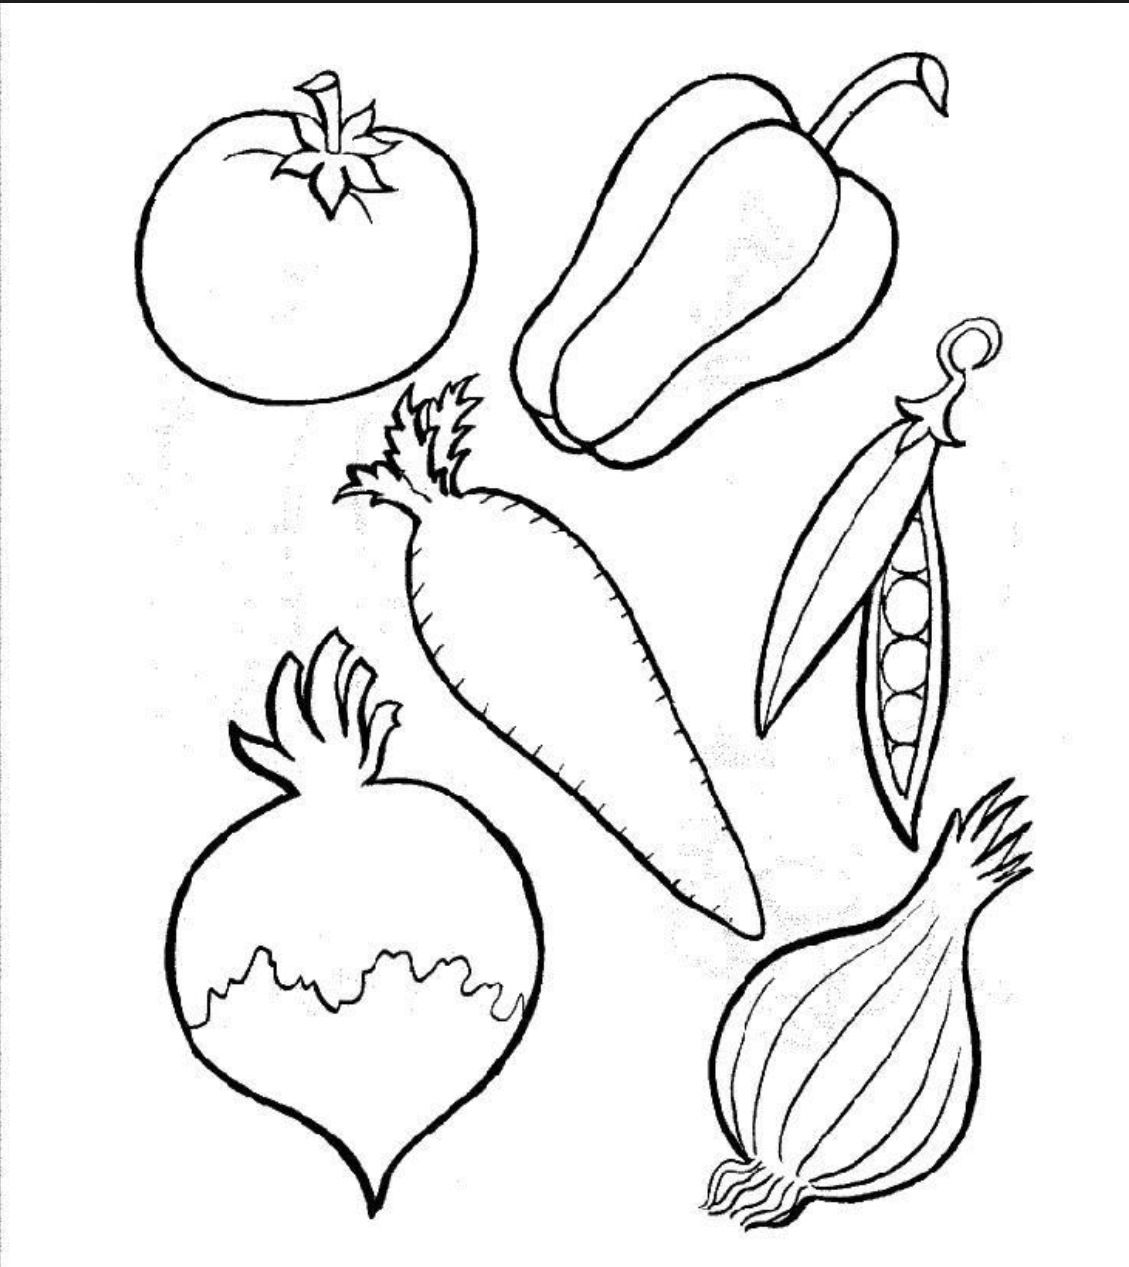 Daniel 1 Veggie Coloring Sheet Fruits And Vegetables Pictures Vegetable Pictures Vegetable Coloring Pages